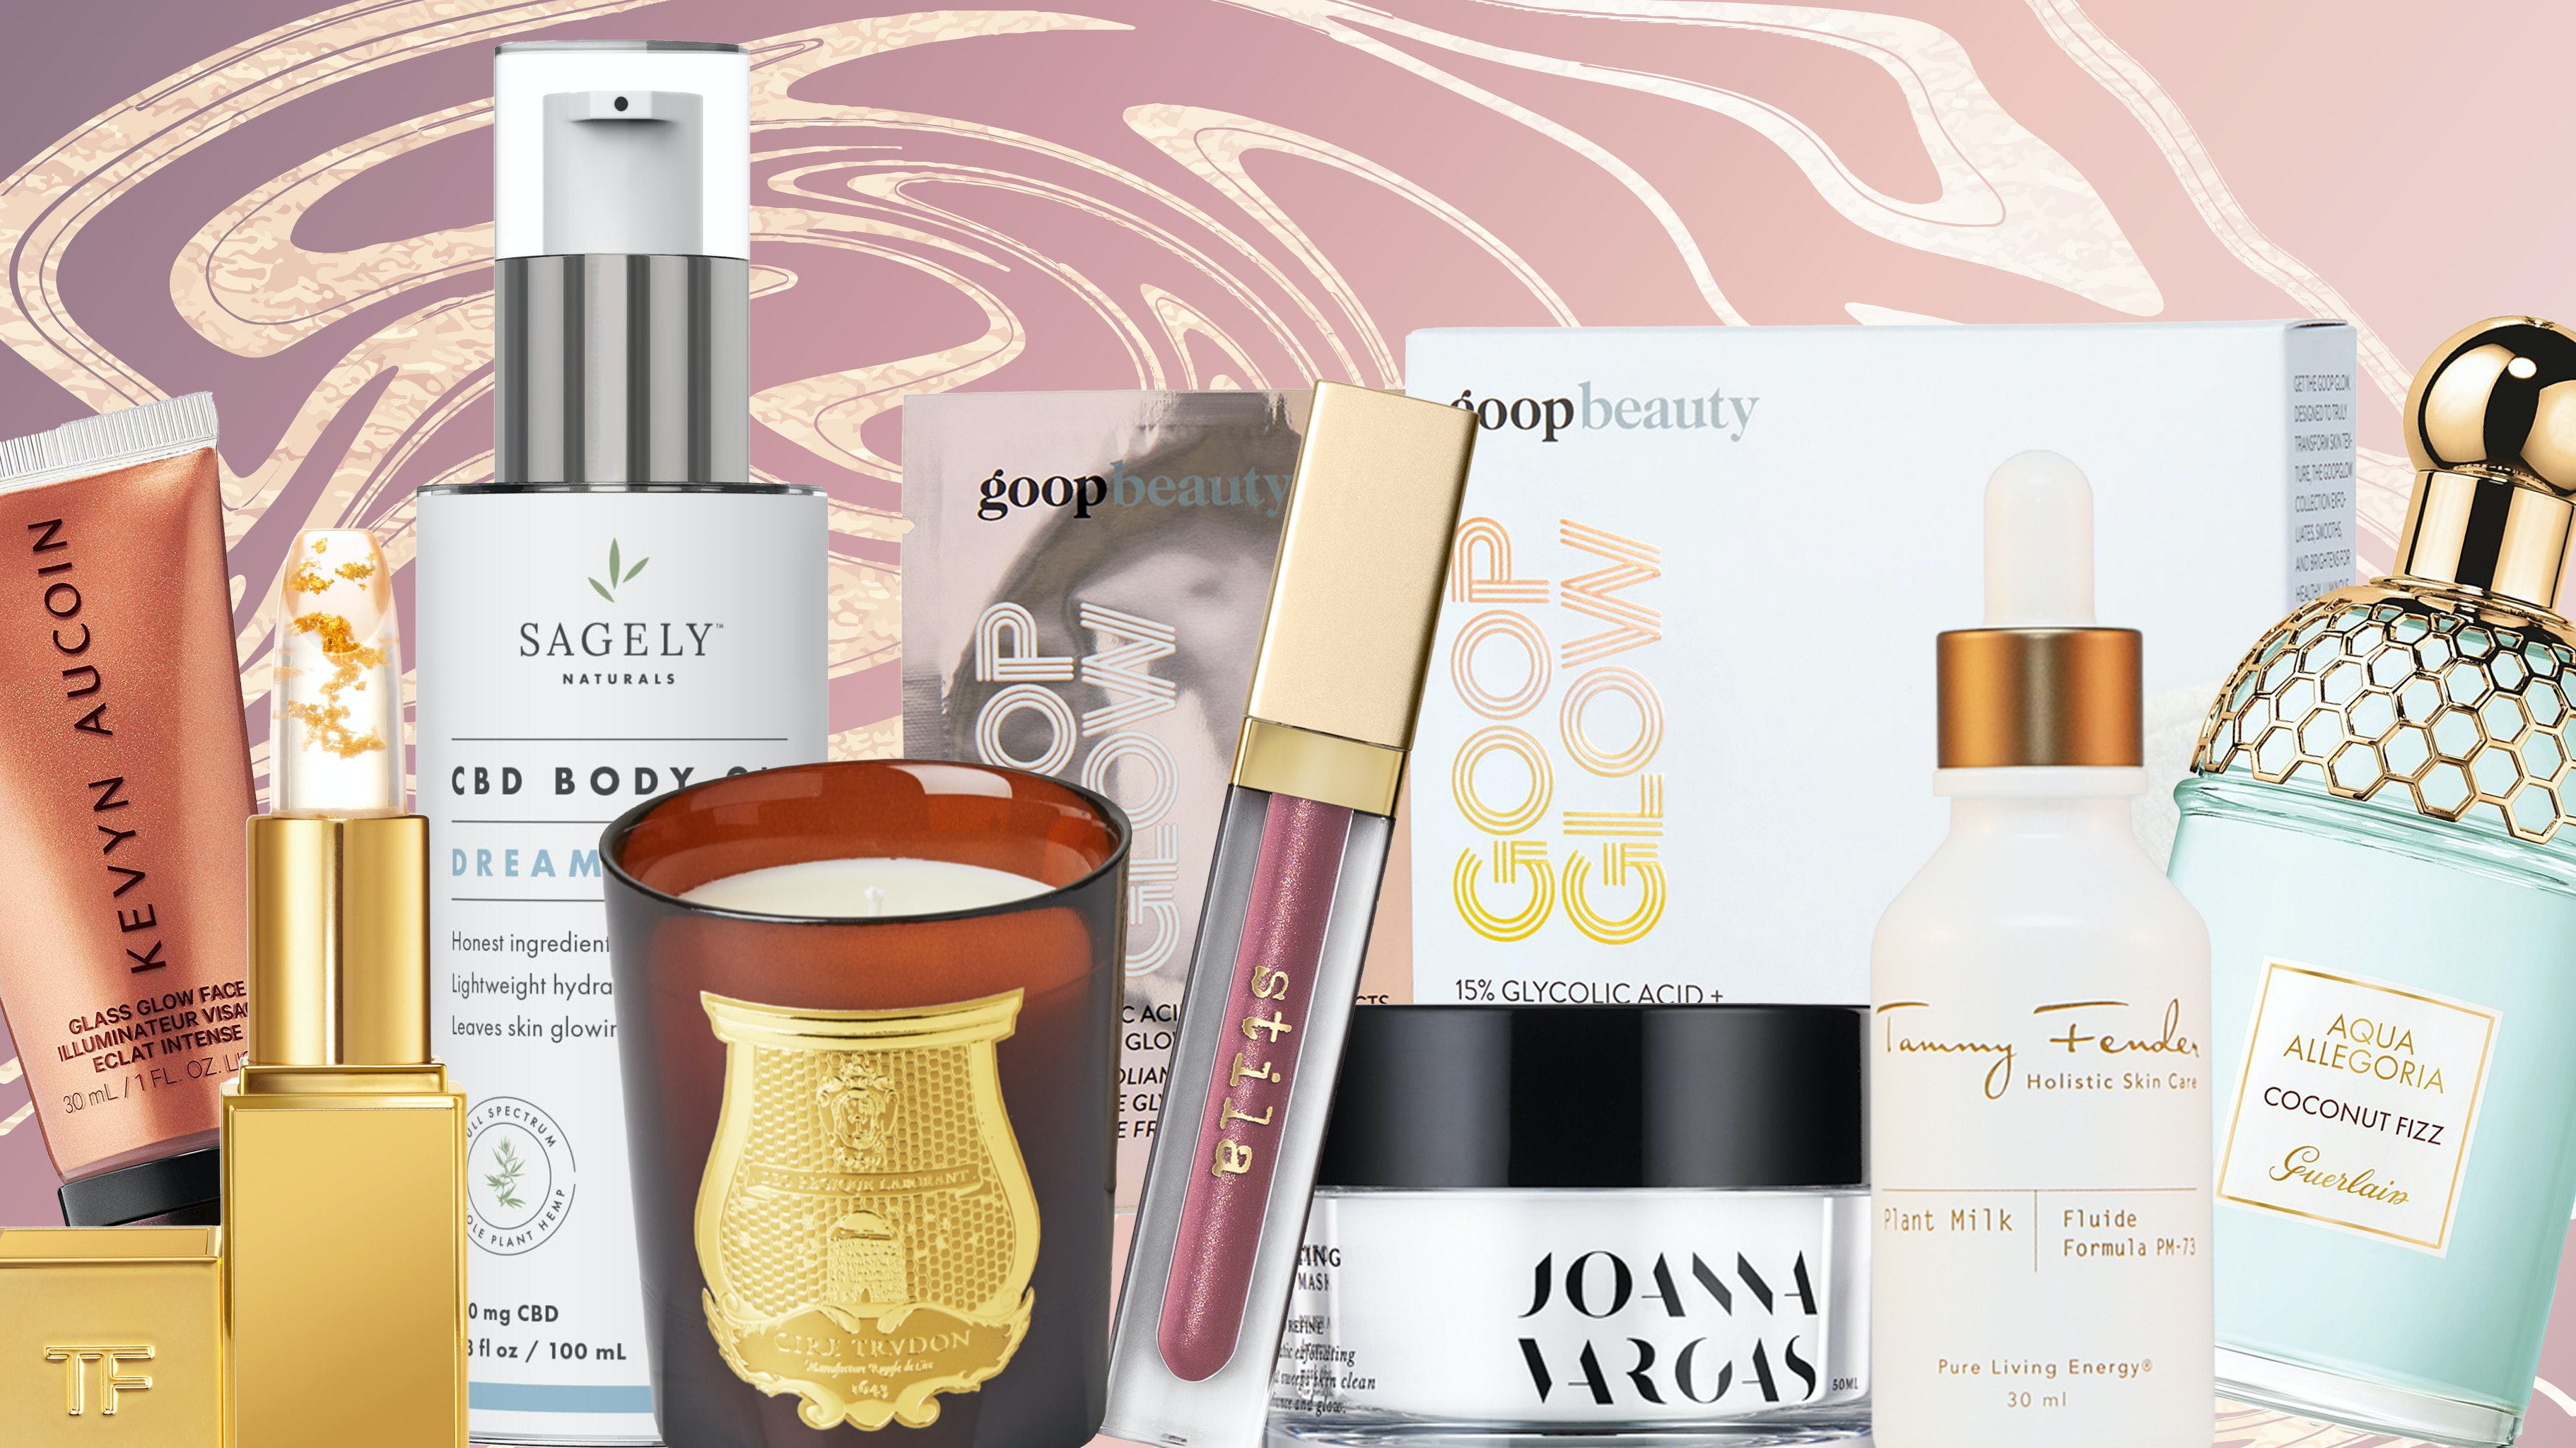 Luxurious Lip Glosses, One-Step Chemical Peels, and More New Beauty Products We Love This Month